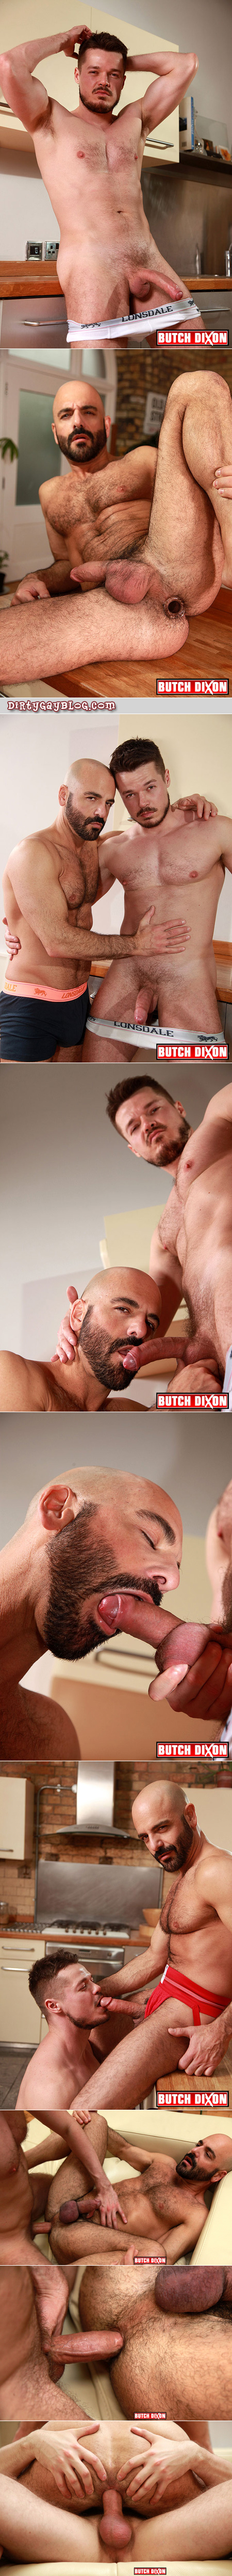 Mature, hairy men barebacking.